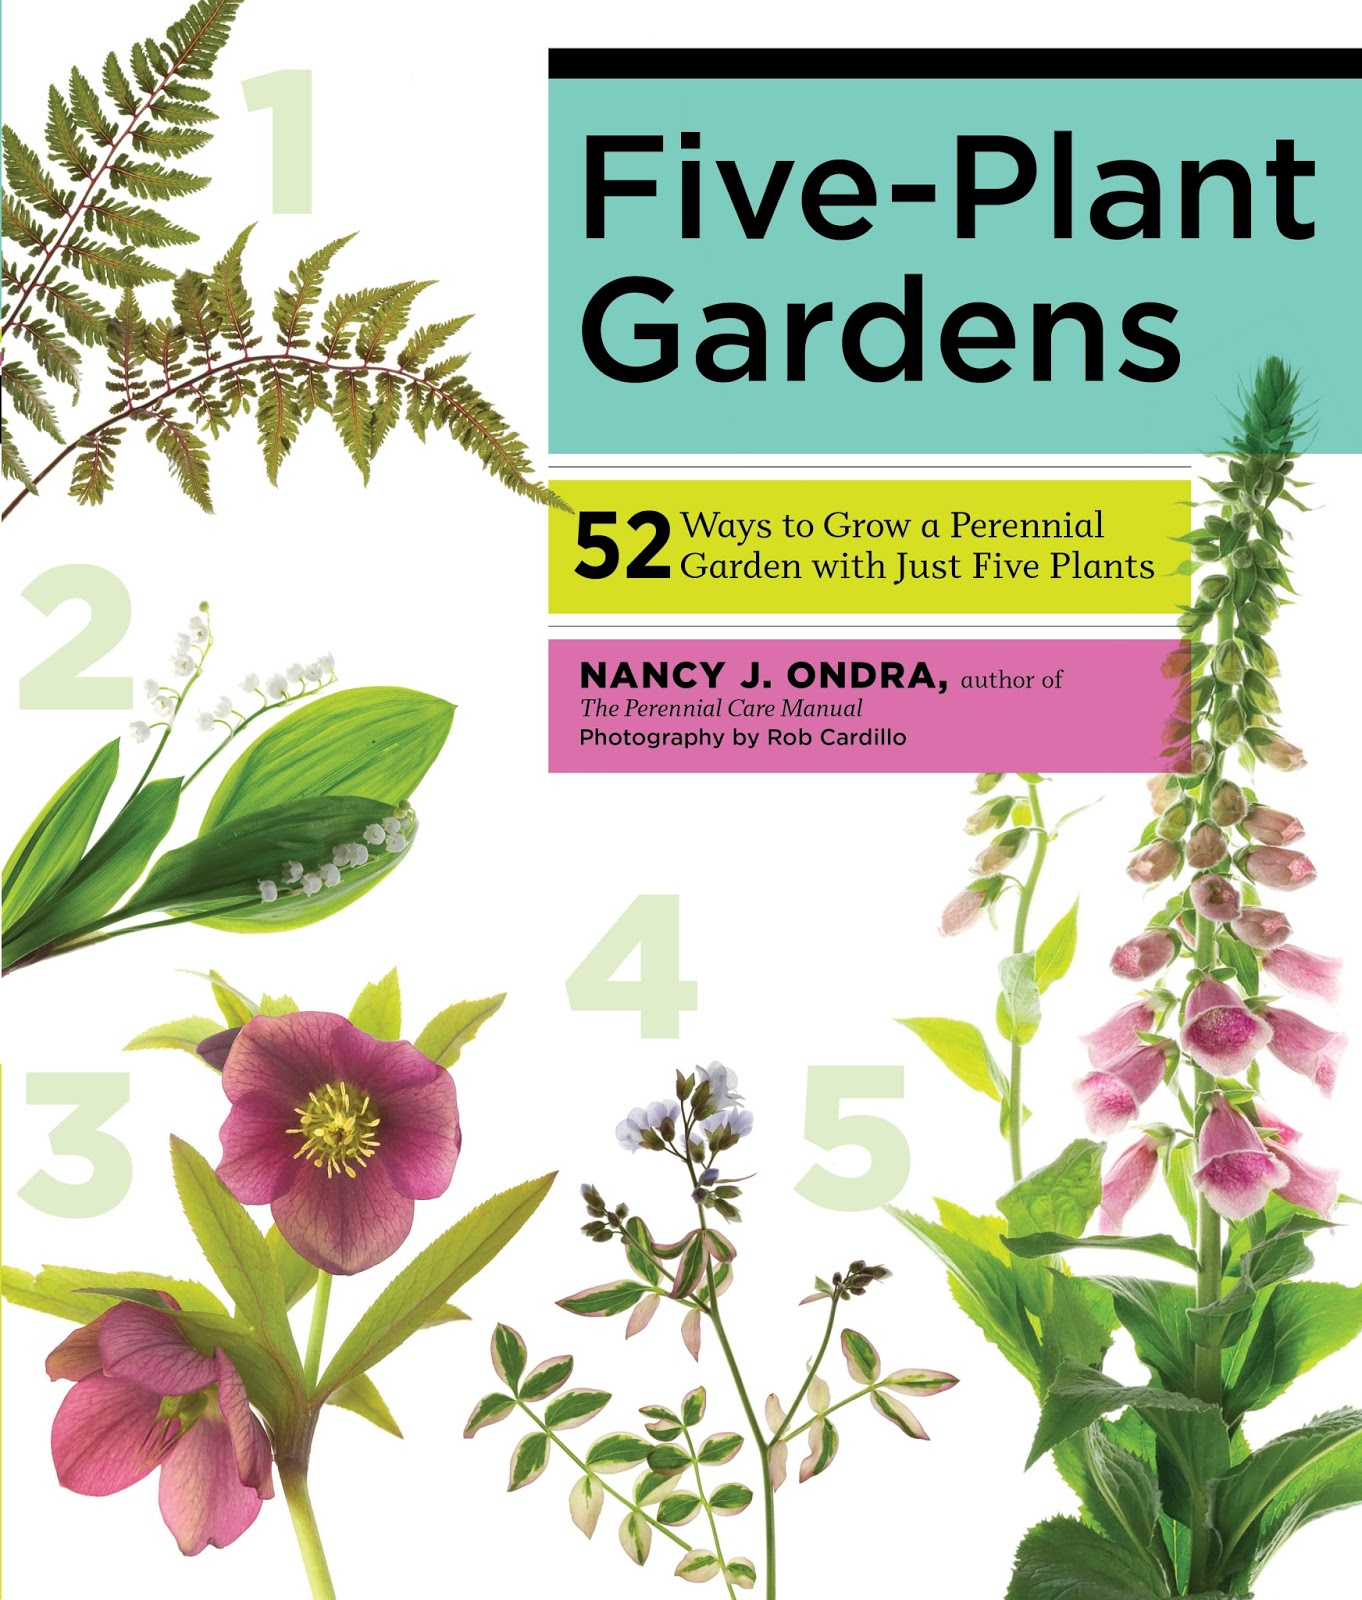 Five-Plant Gardens - 52 Ways to Grow a Perennial Garden with Just Five Plants